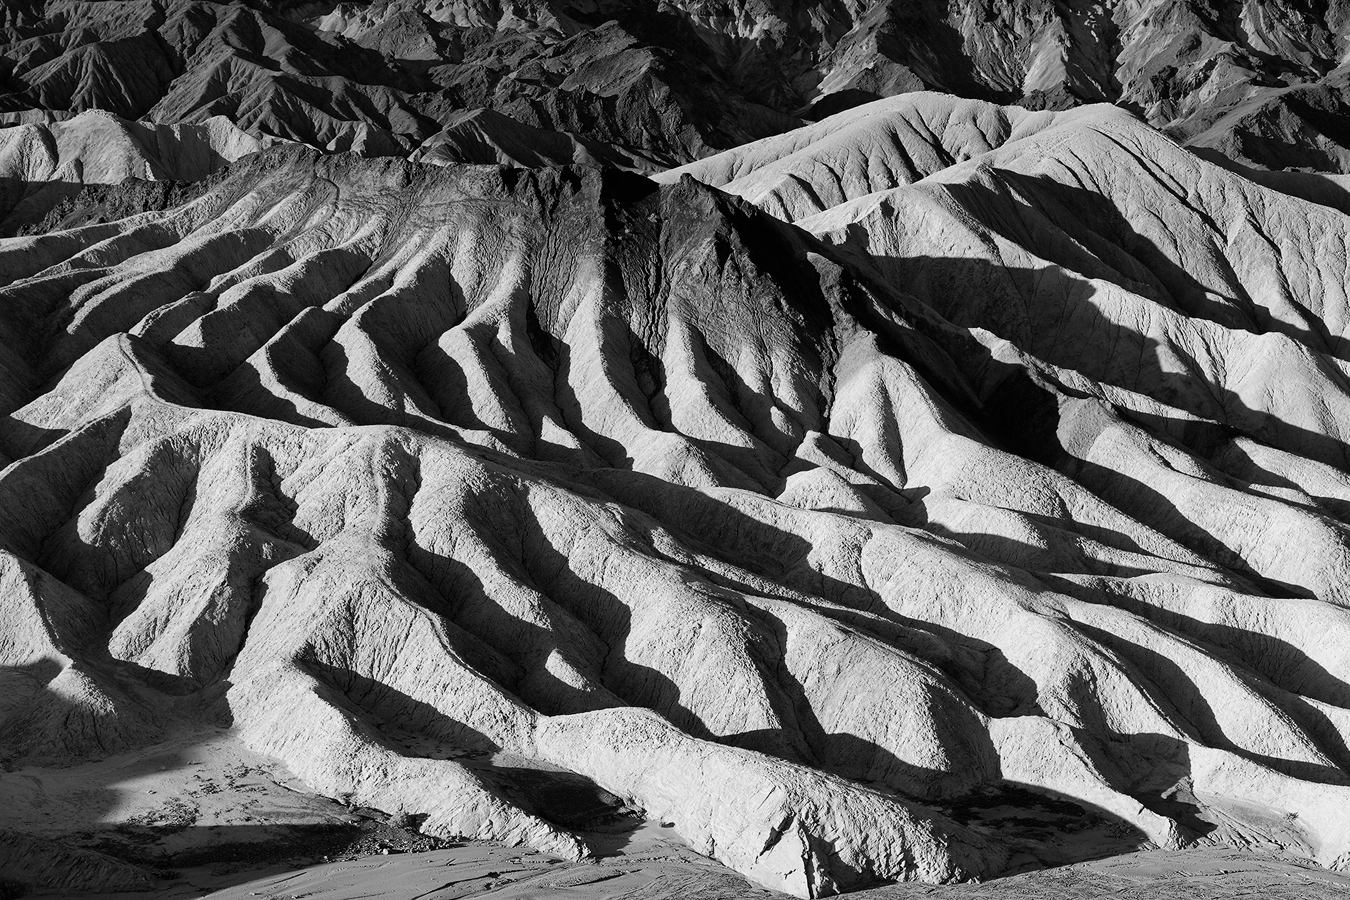 Zabriskie Point 2, parc national de la Vallée de la Mort, Californie, USA. 2016